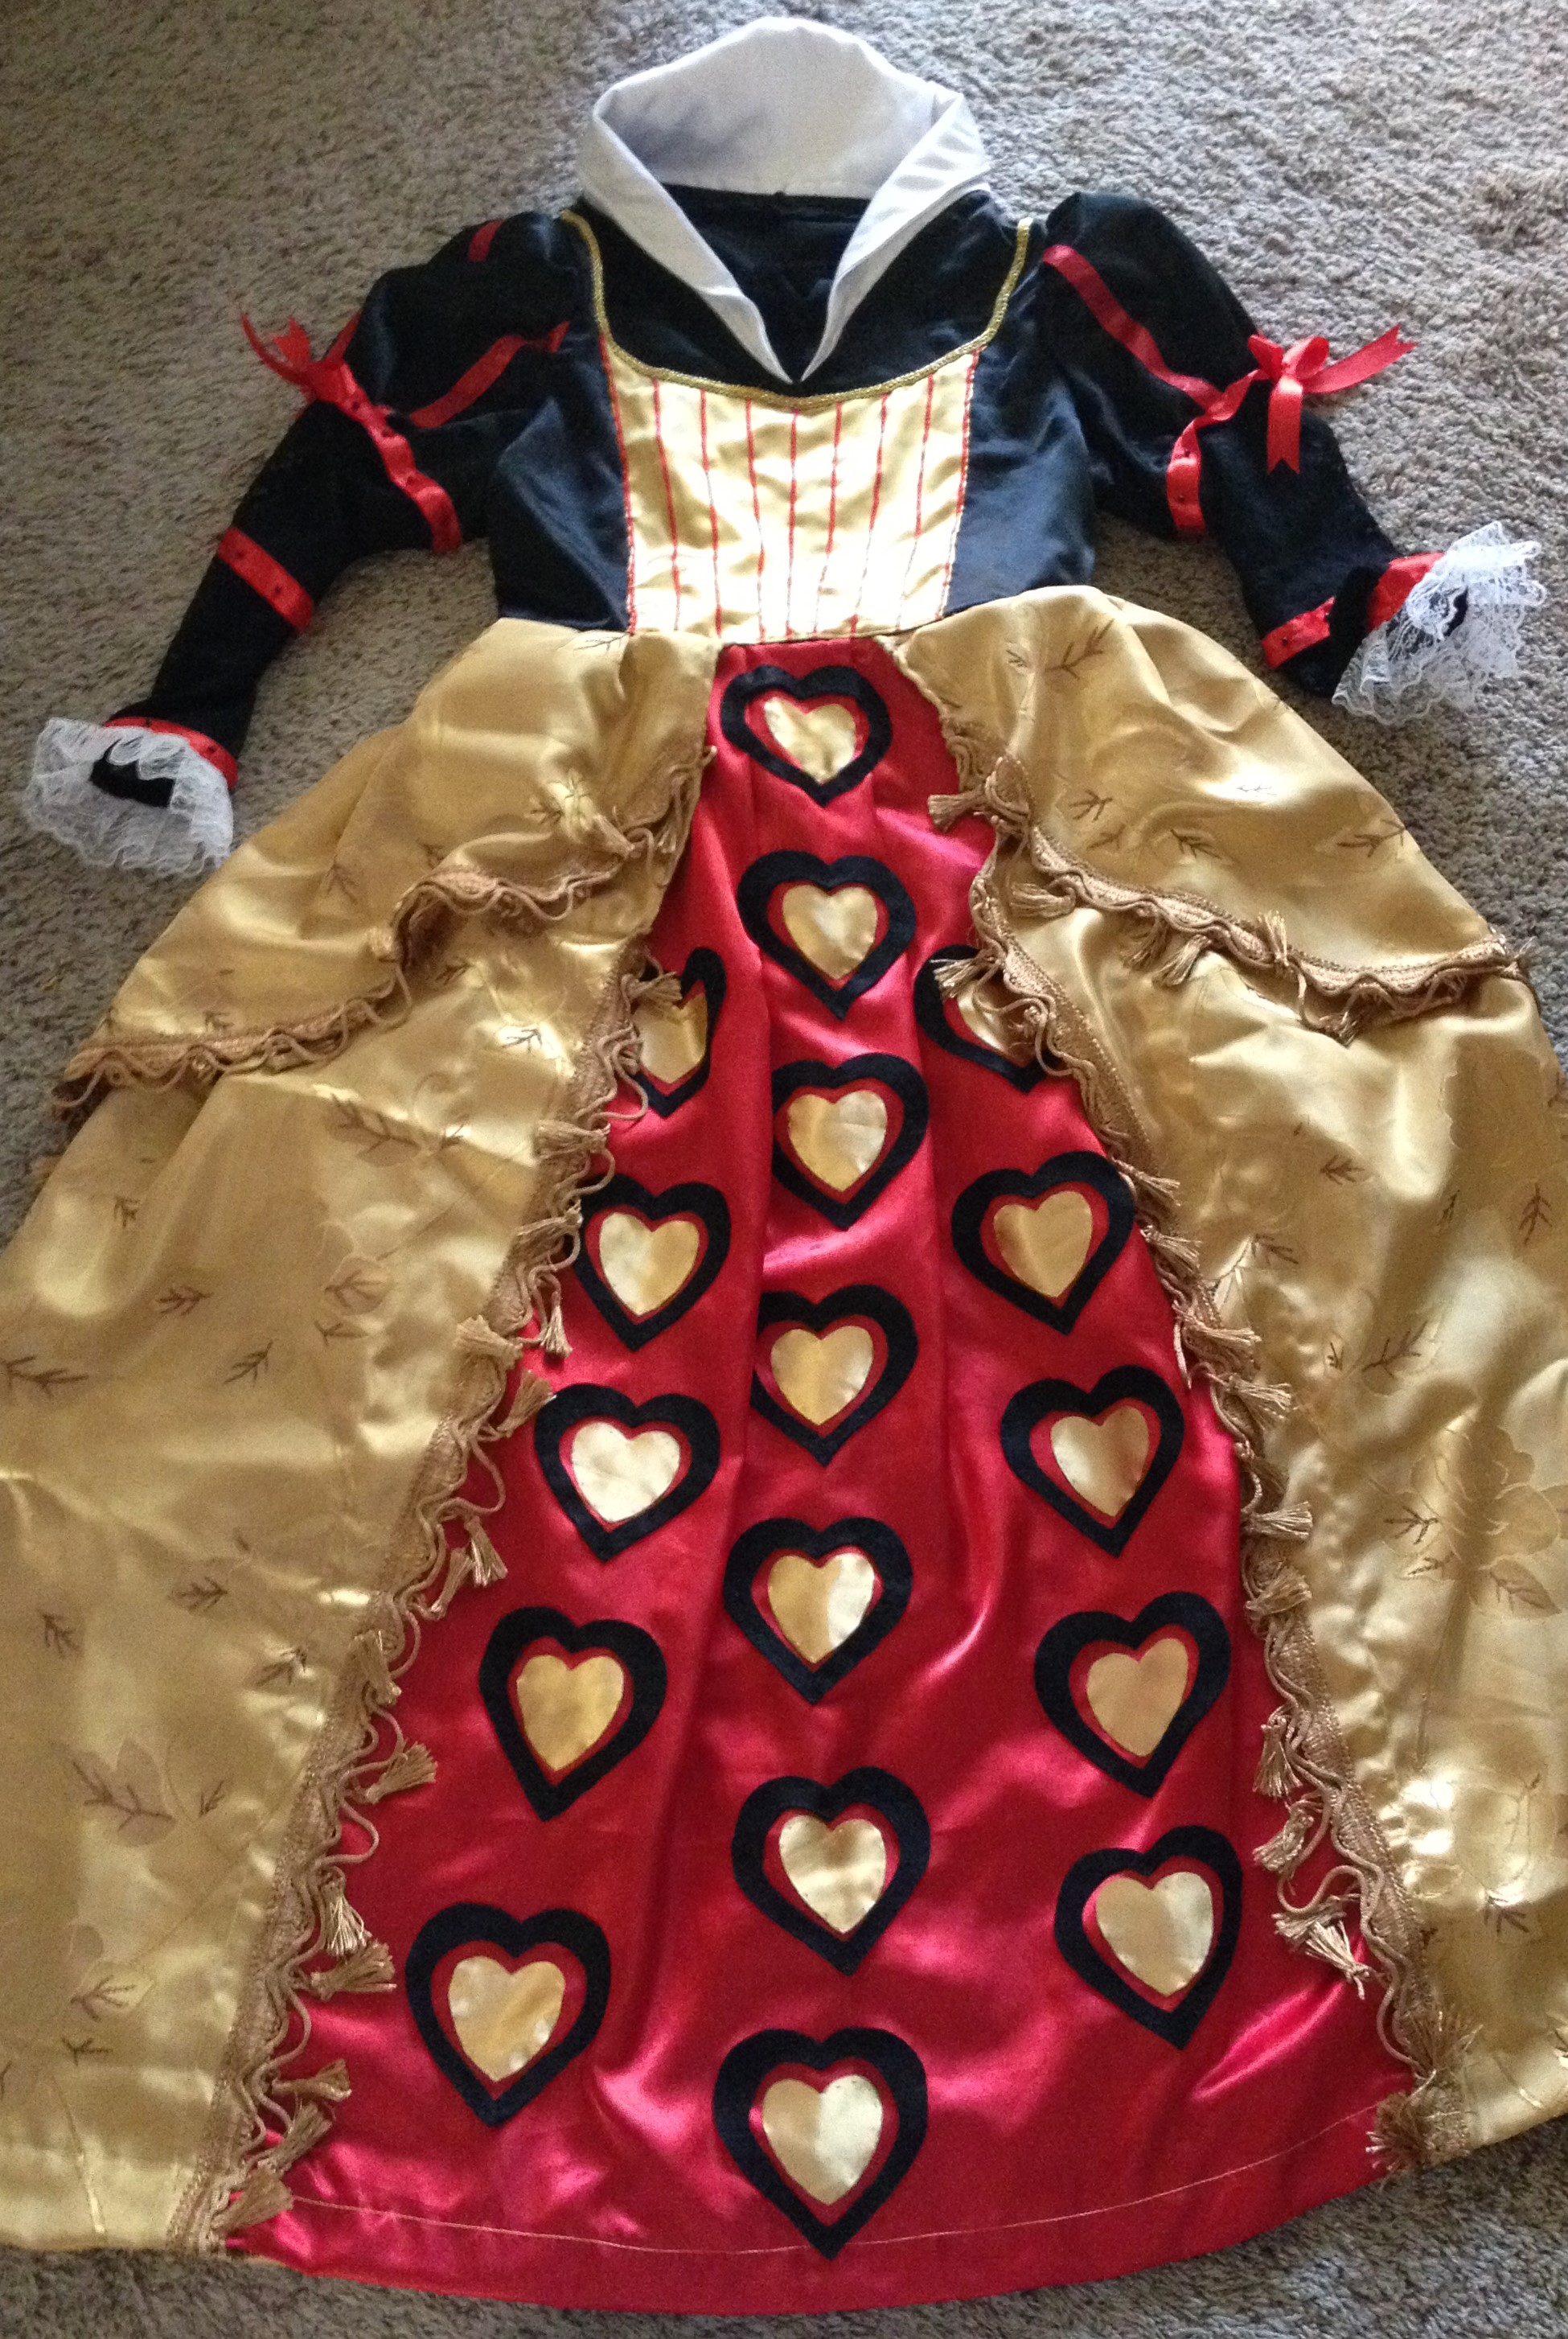 Queen of Hearts (Tim Burton Alice in Wonderland)